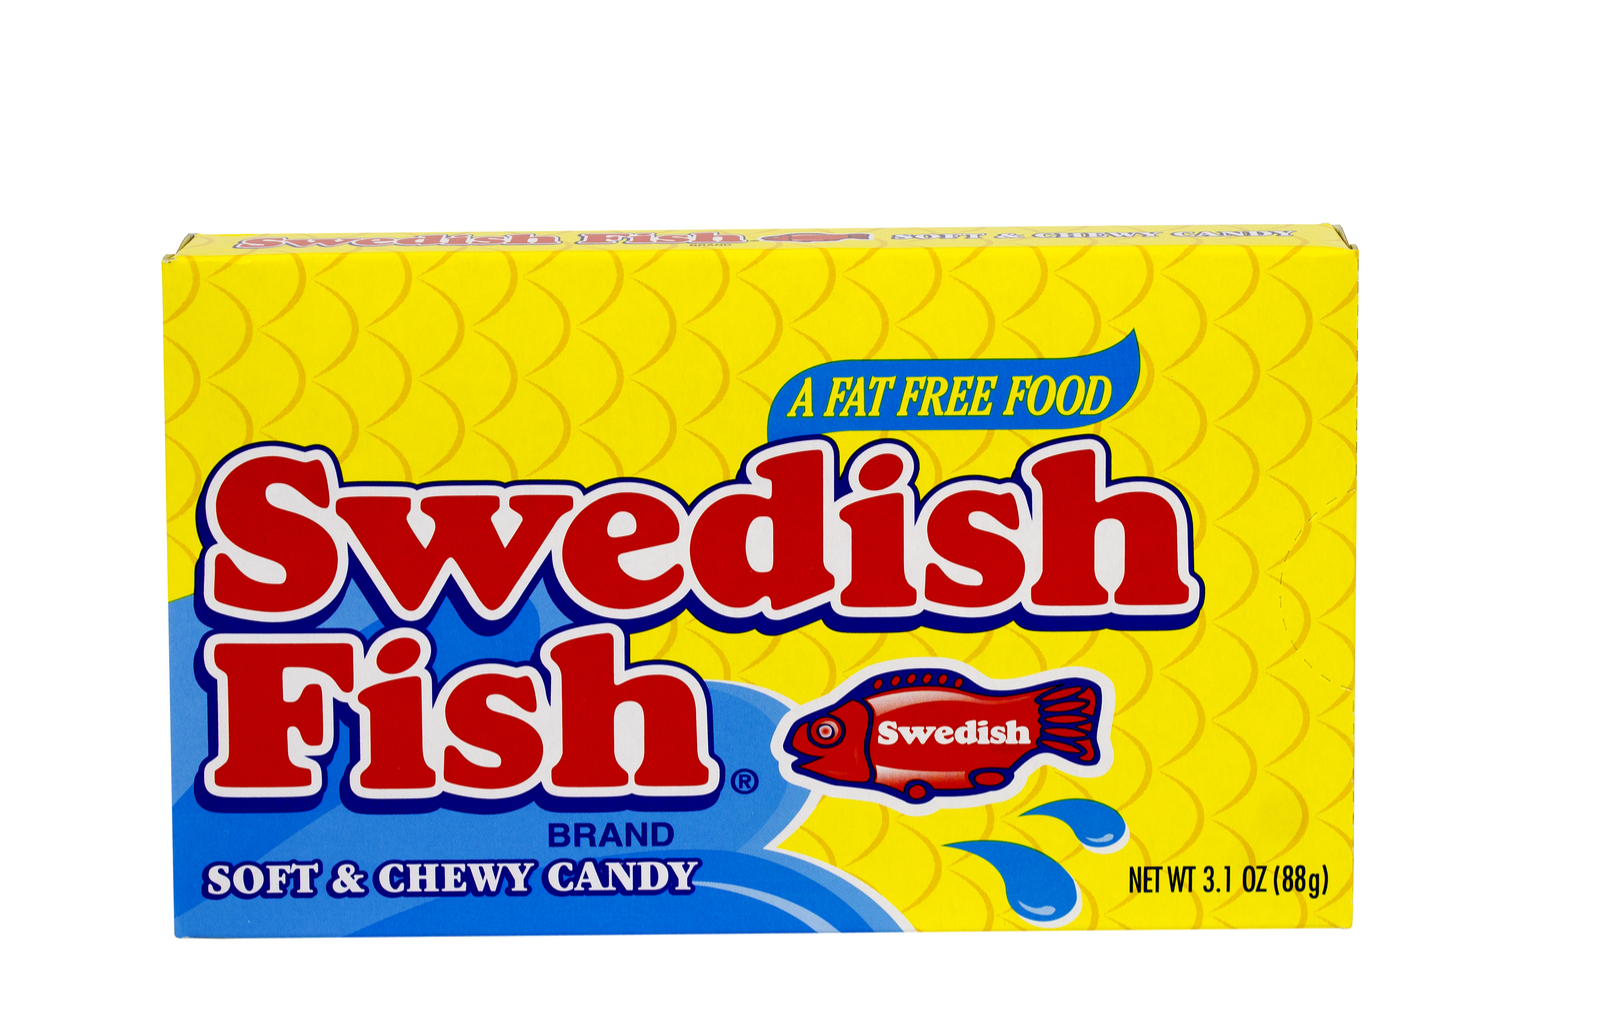 Swedish Fish | 15 Popular Snack Foods That Are Actually Vegan Approved